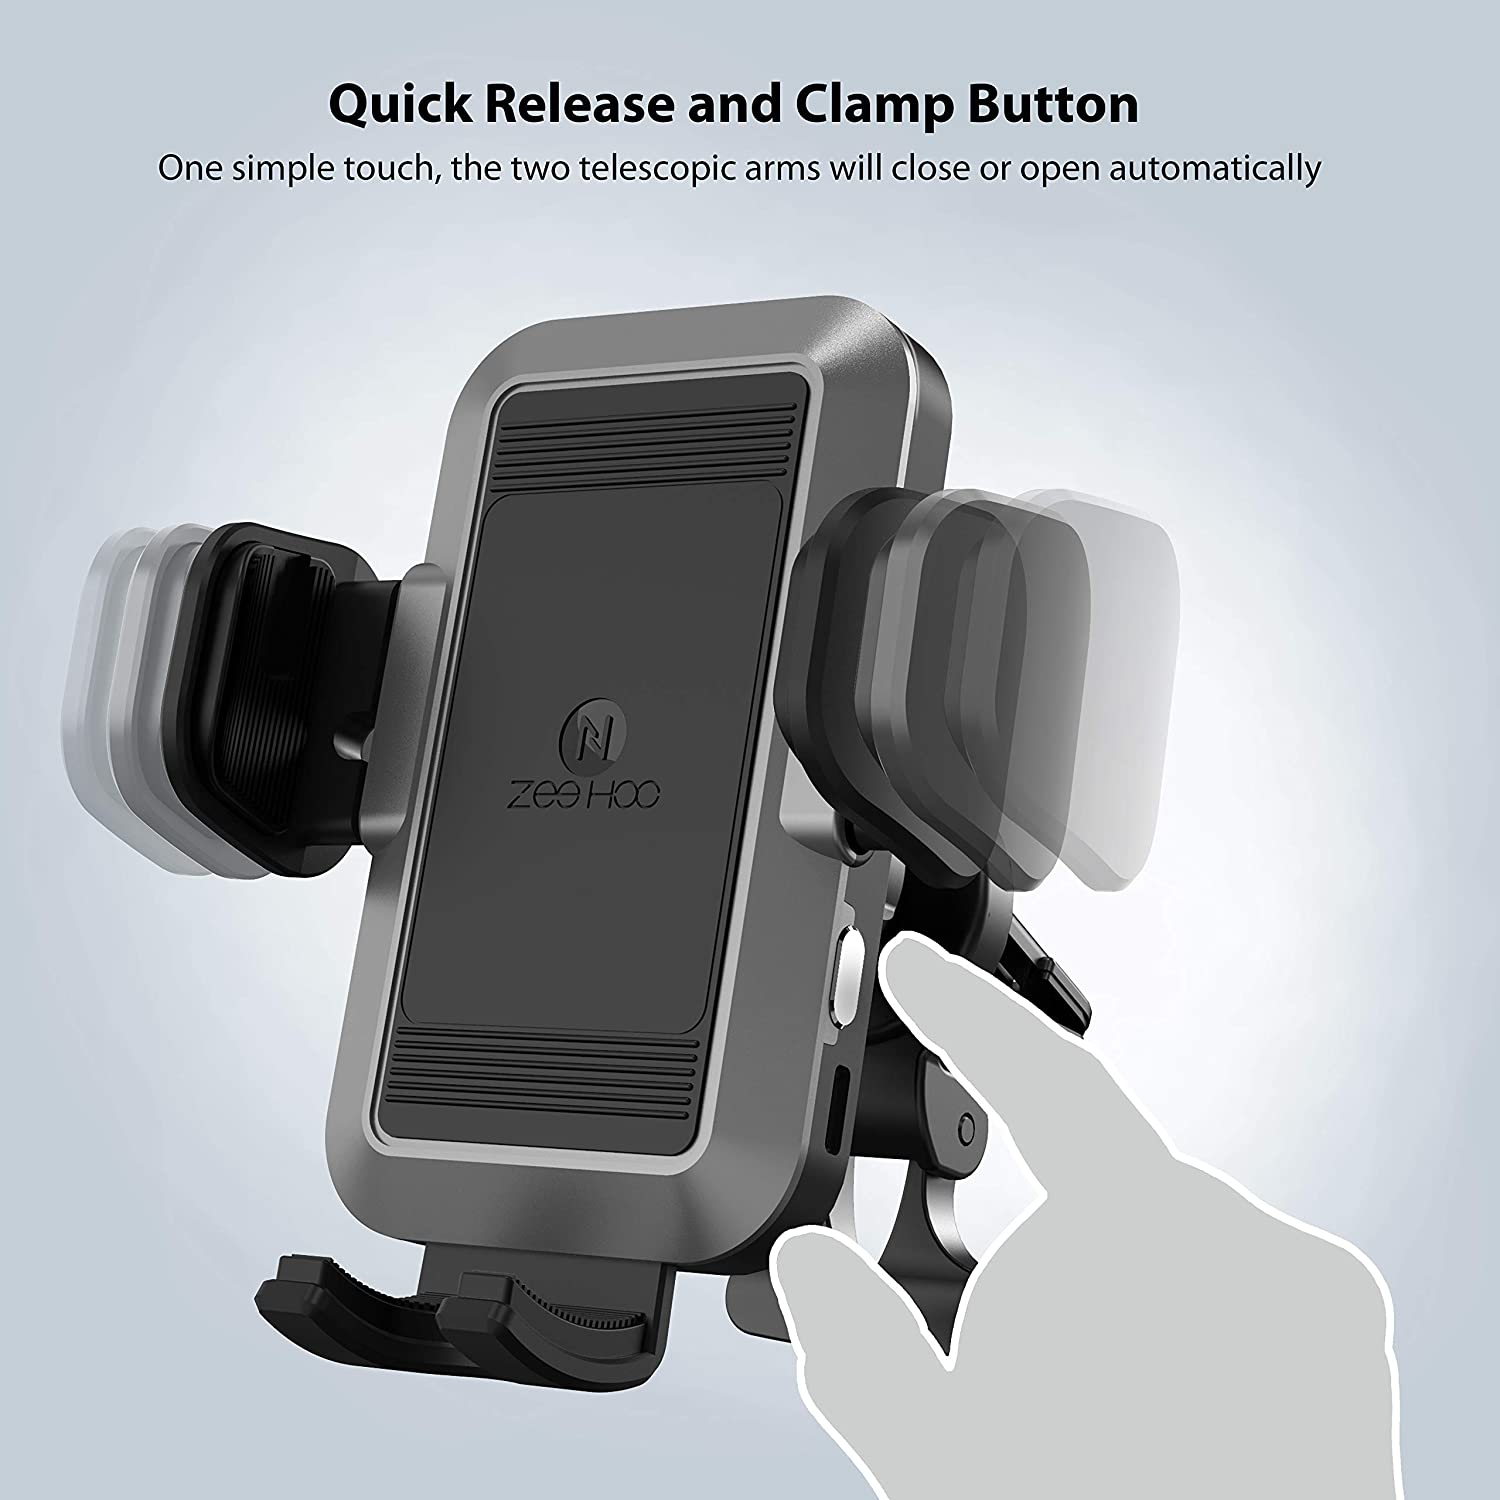 Battery Powered ZeeHoo Automatic Car Phone Mount,Electric Powered Auto Clamping Air Vent Car Phone Holder,Compatible iPhone 11//11 Pro Max//X//XS Max//XR//8//7//6,Galaxy S10//S10+//S9//S9+//S8,Google Nexus,LG